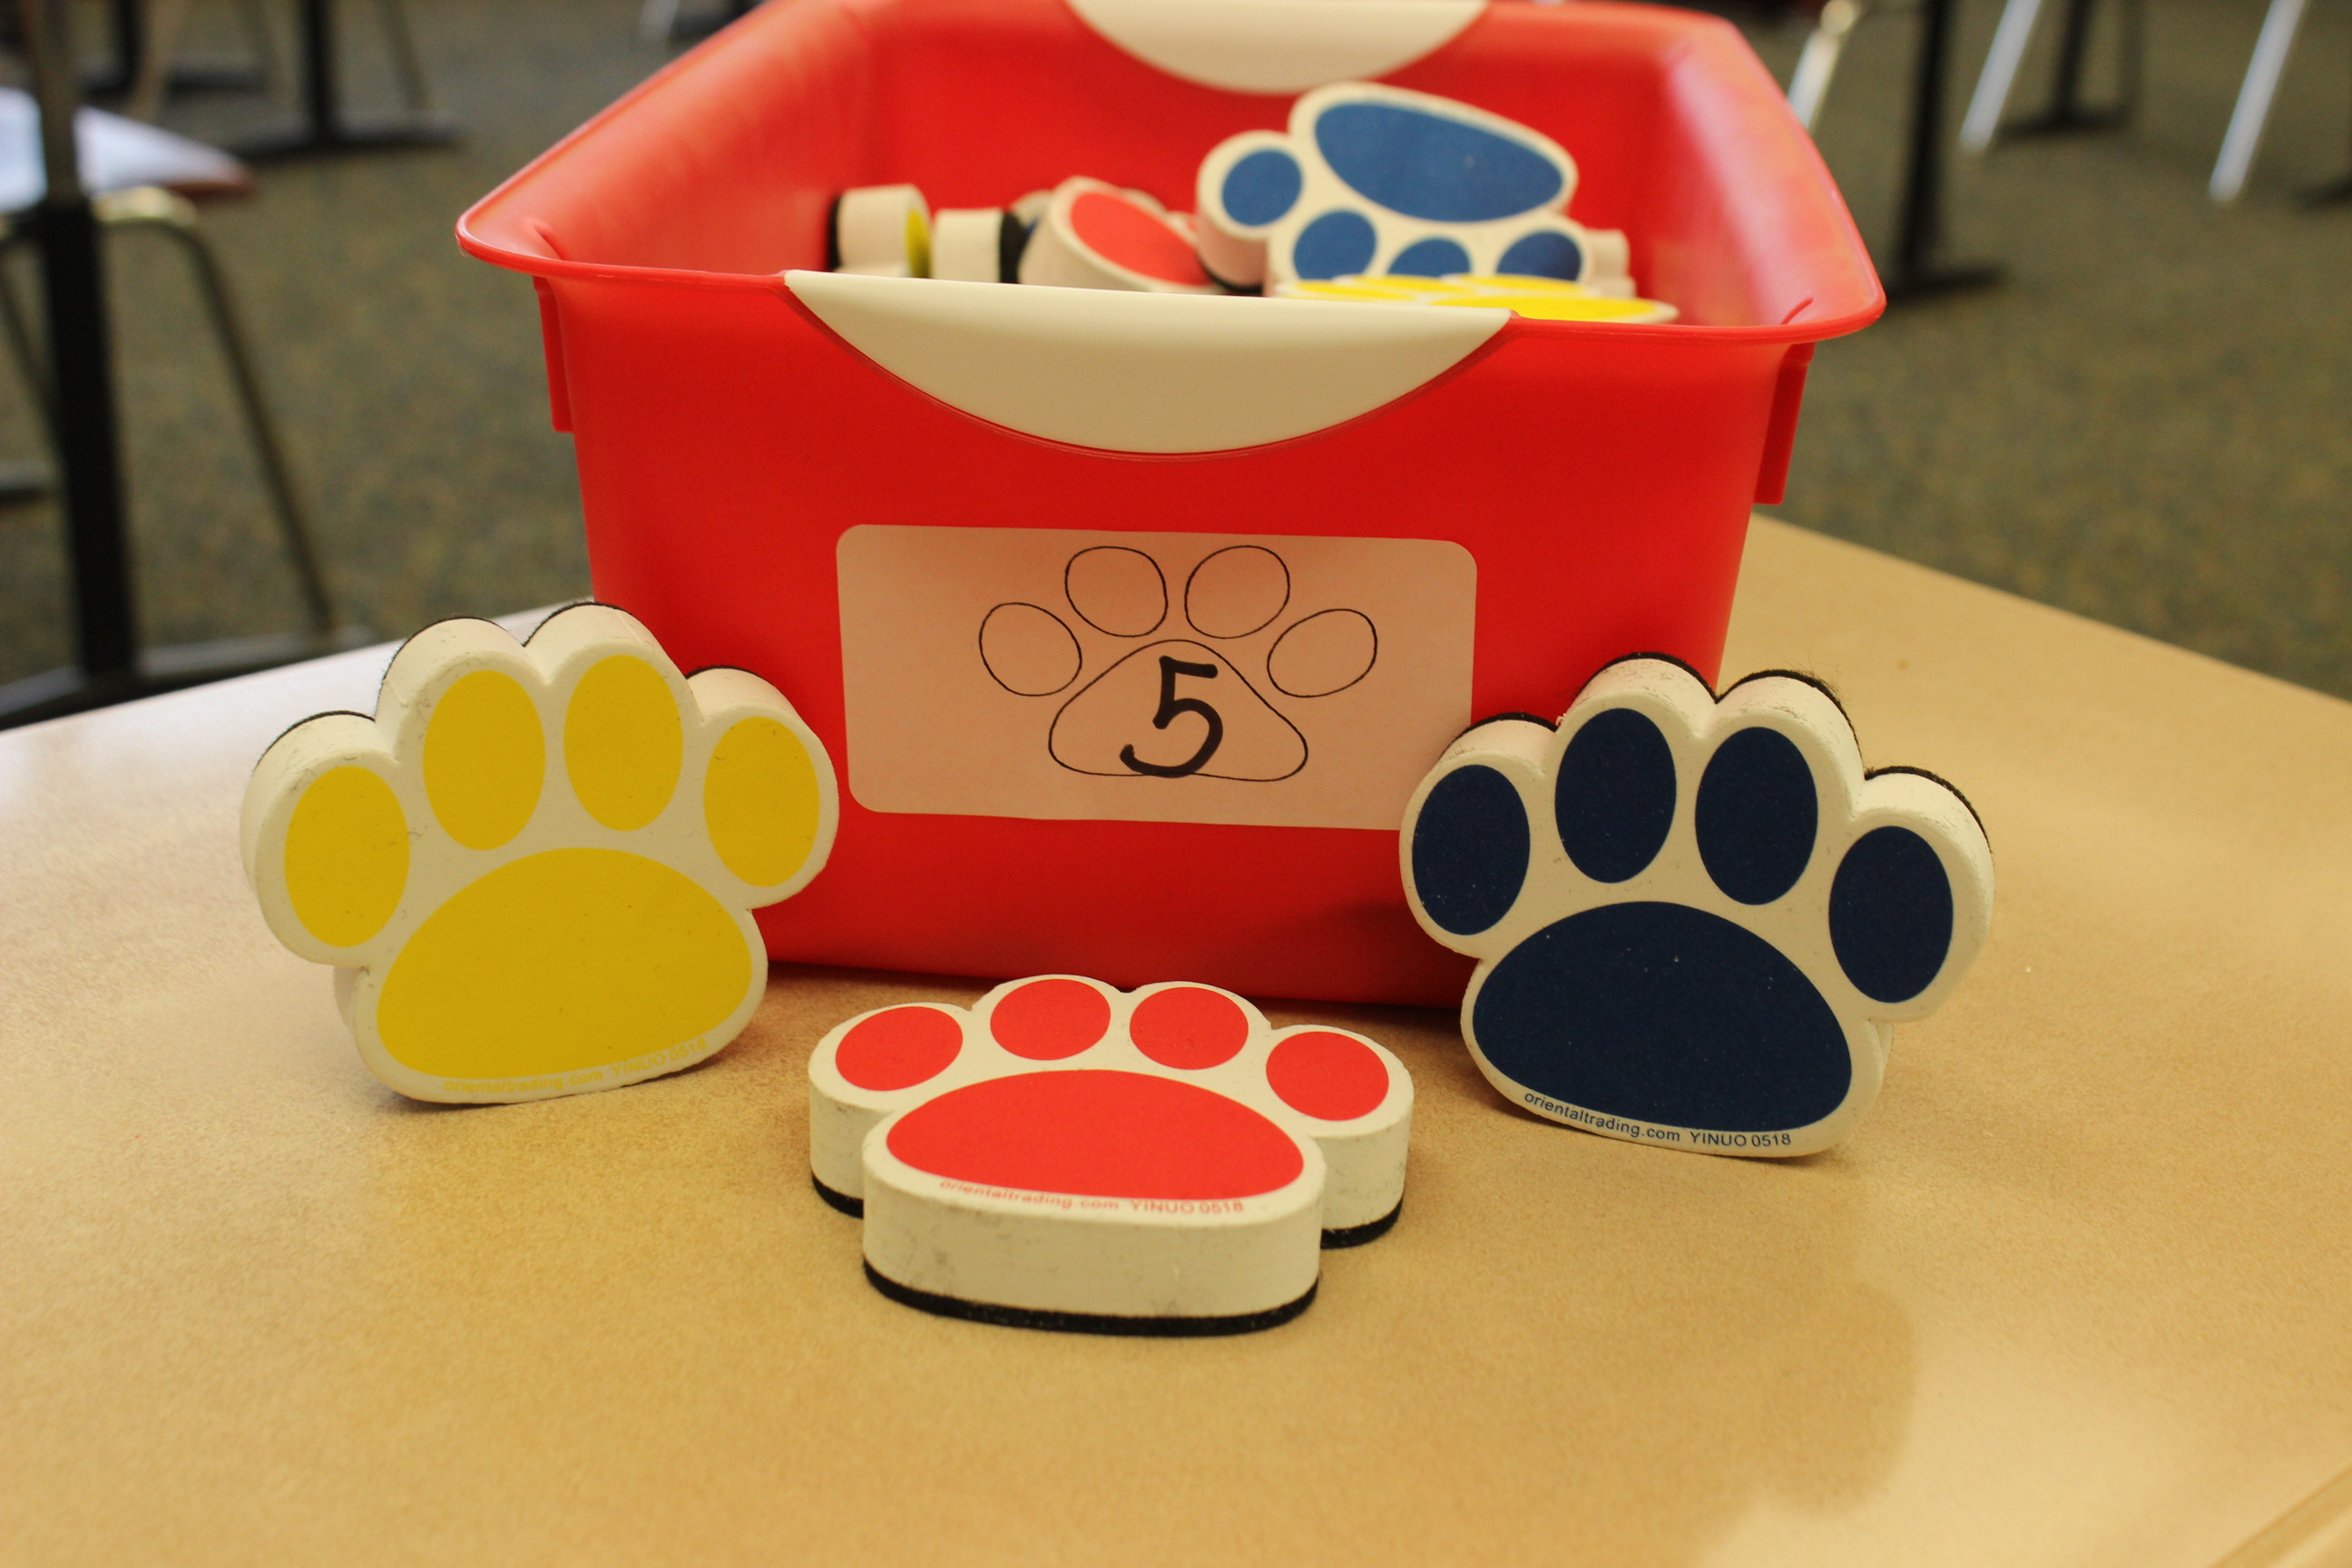 5 Paws Paw Whiteboard Eraser